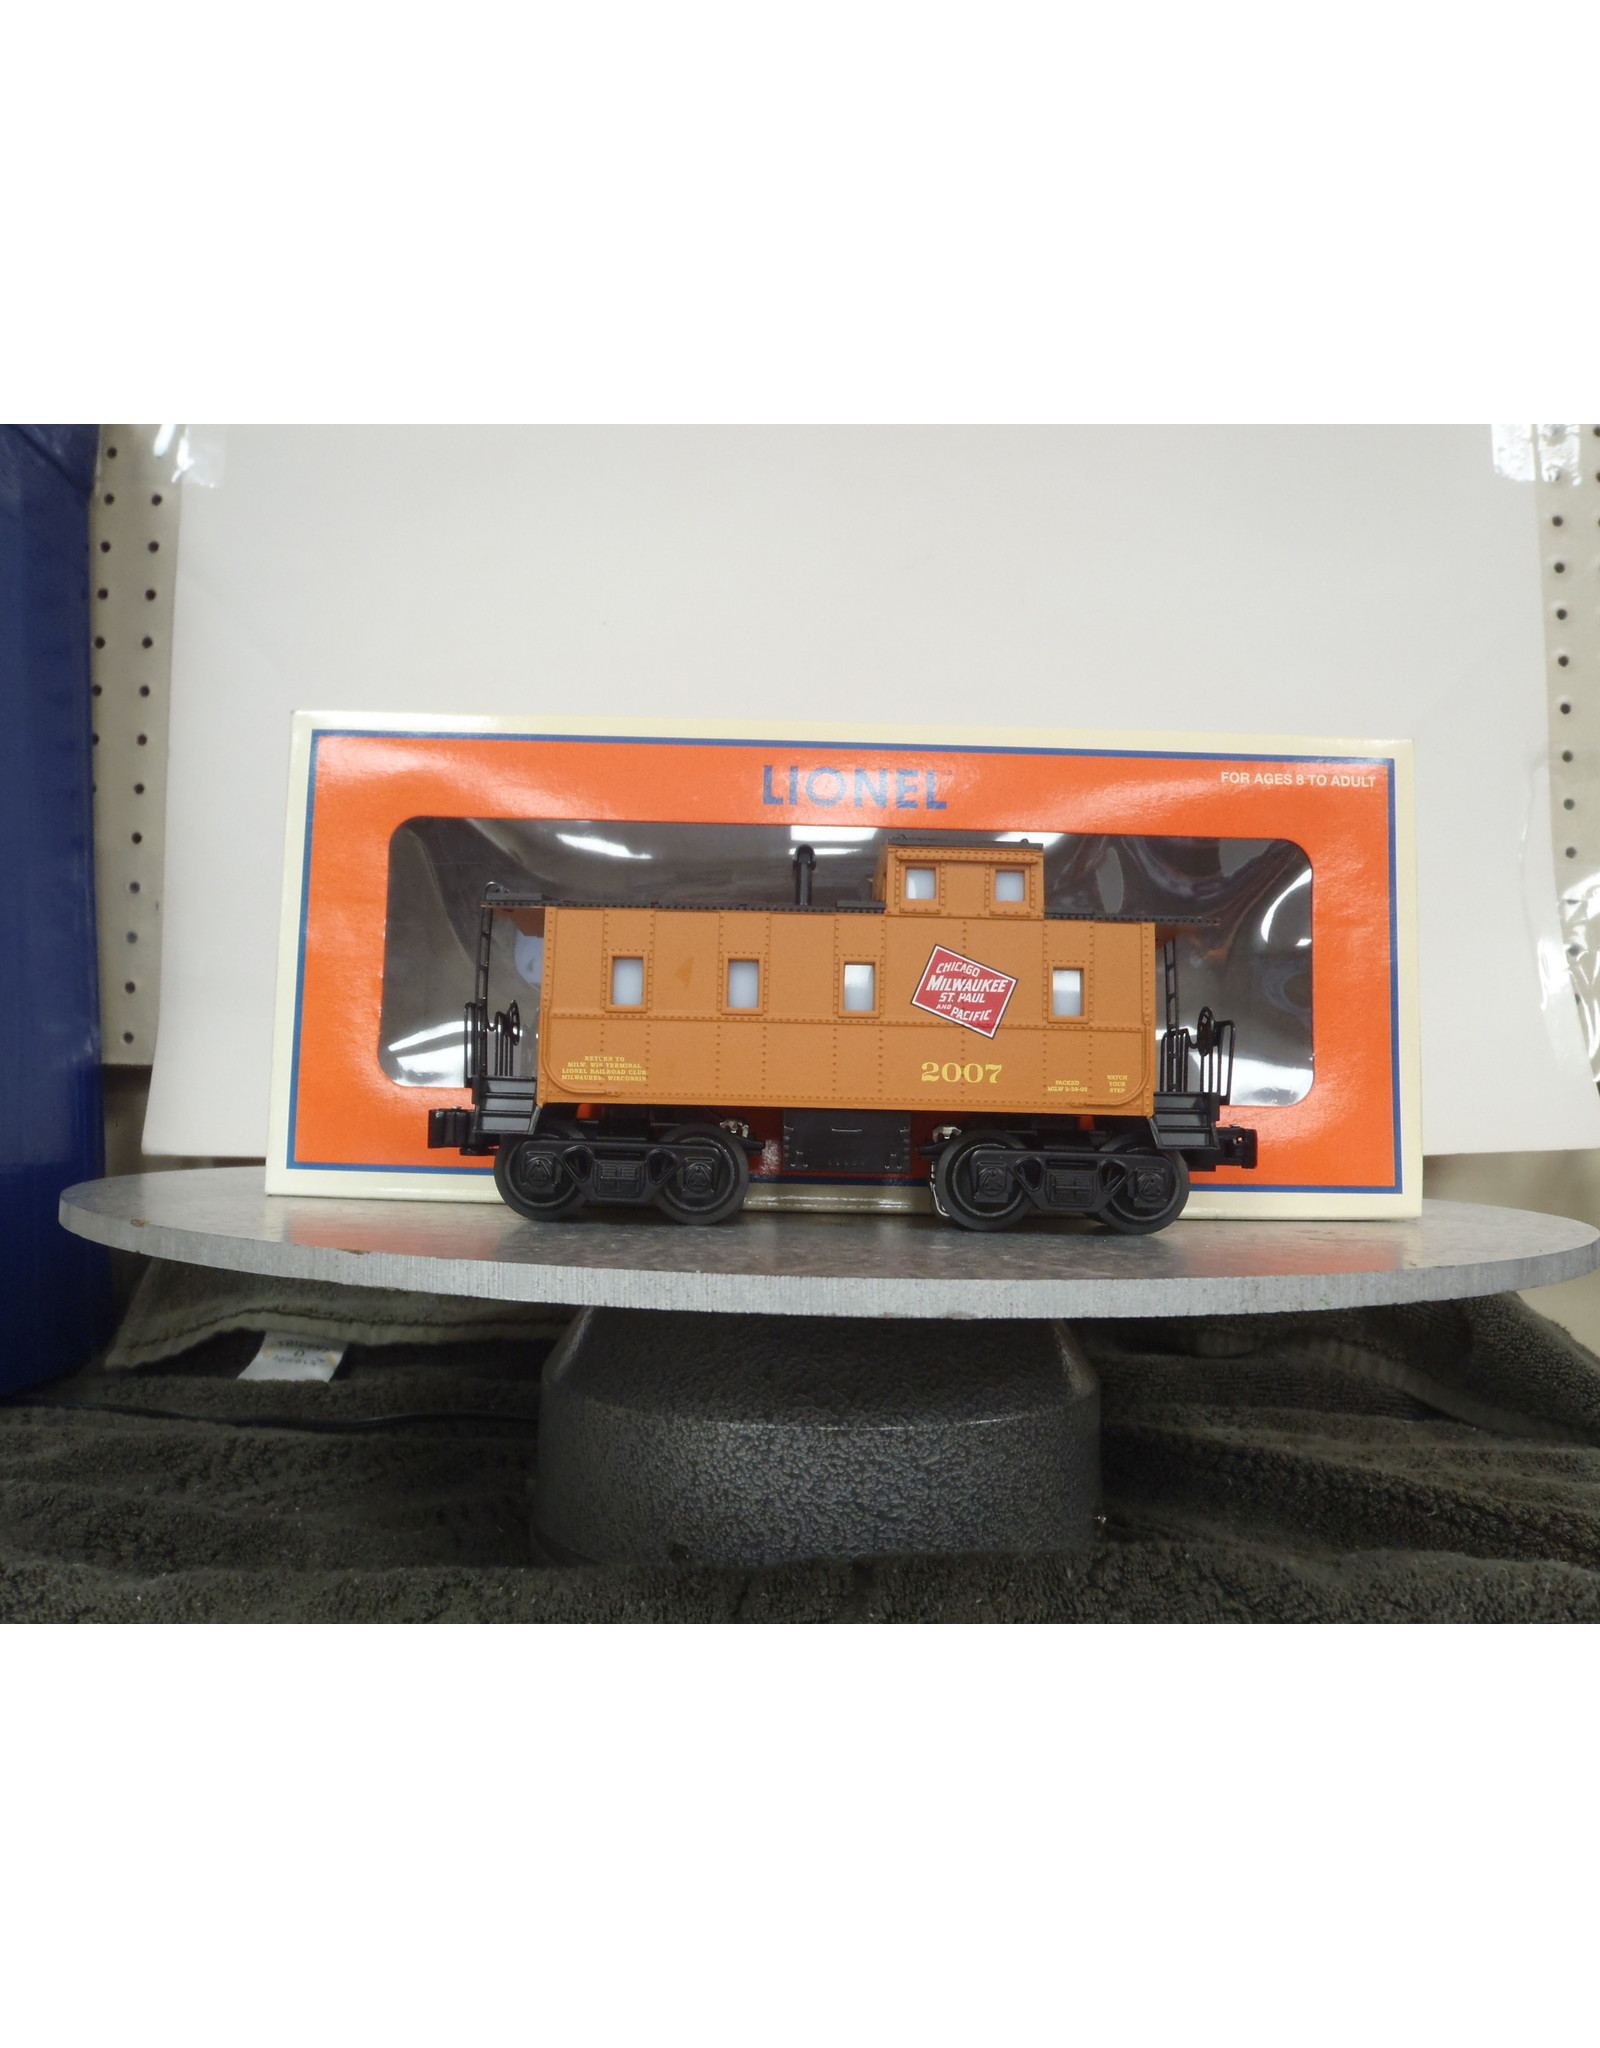 Lionel Caboose Offset Cupola Milwaukee Rd 2007